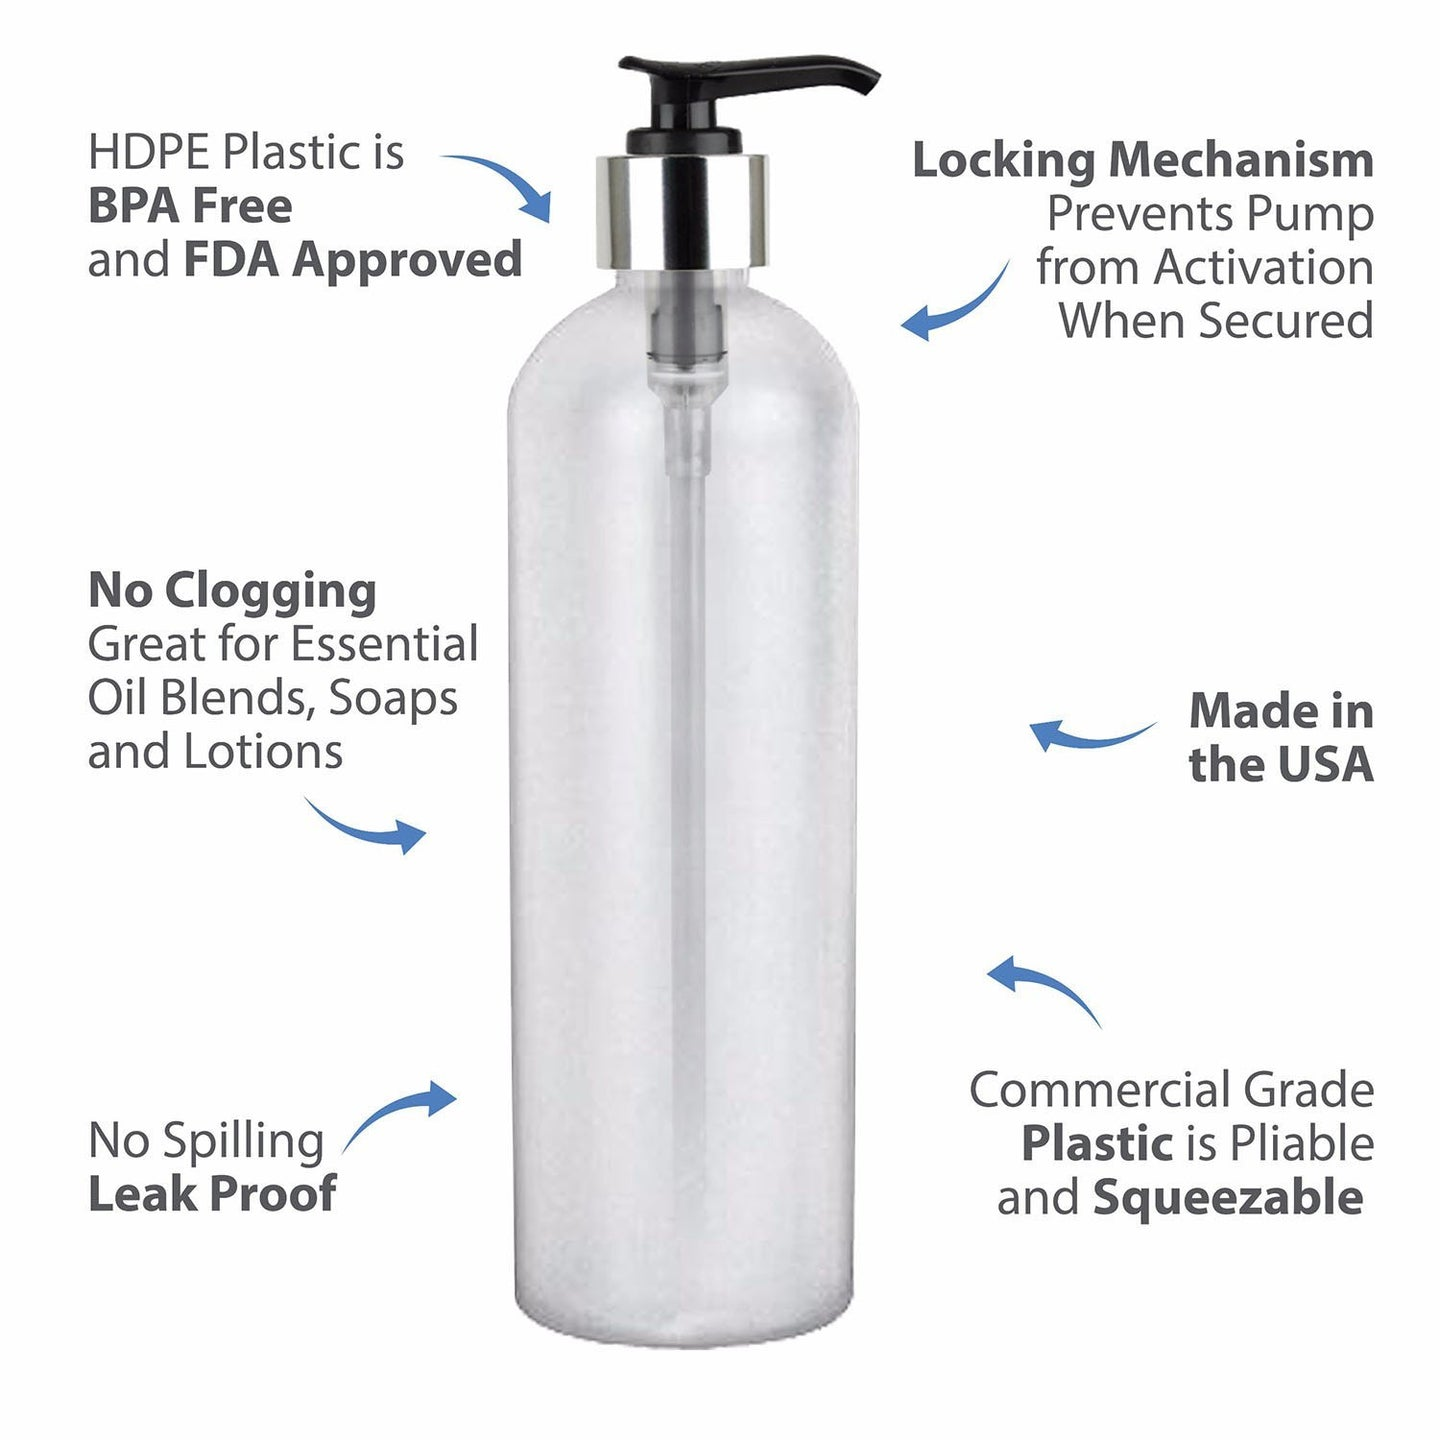 MoYo Natural Labs 16 oz Pump Dispenser, Empty Soap and Lotion Bottle with Locking Cap, BPA Free HDPE Plastic Containers for Essential Oils/Liquids (Pack of 12, Translucent White)